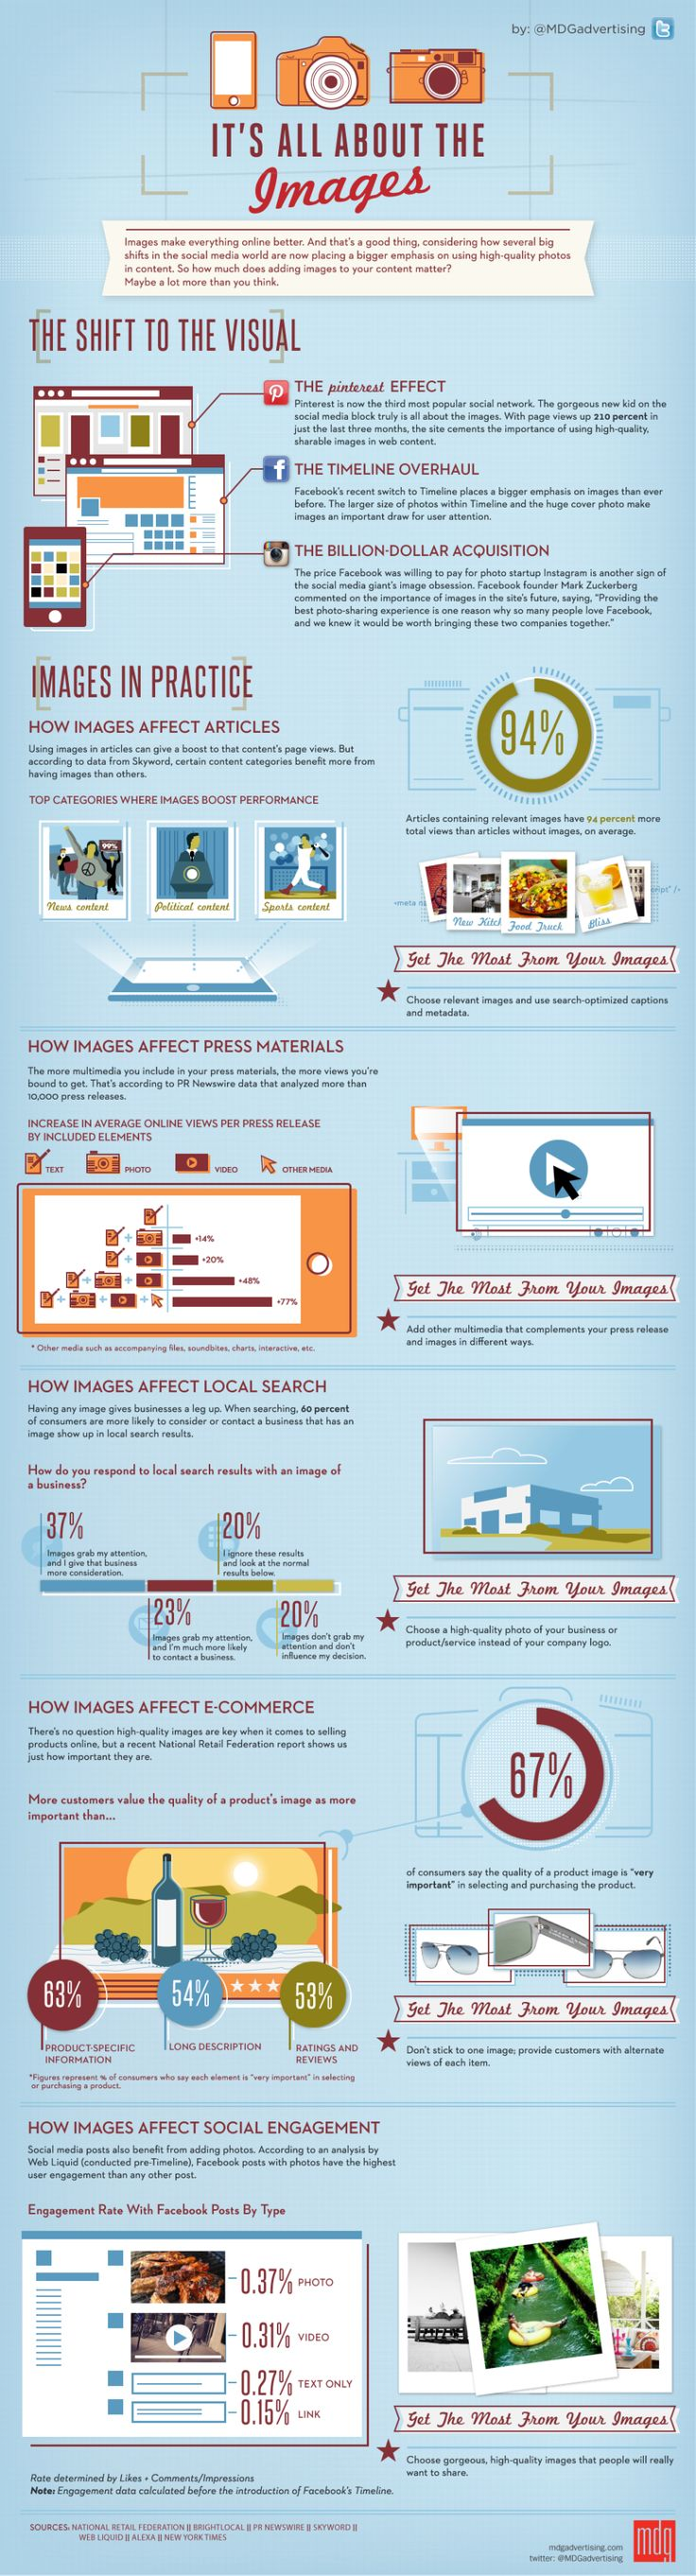 Impact of Images on Social Media Marketing Infographic